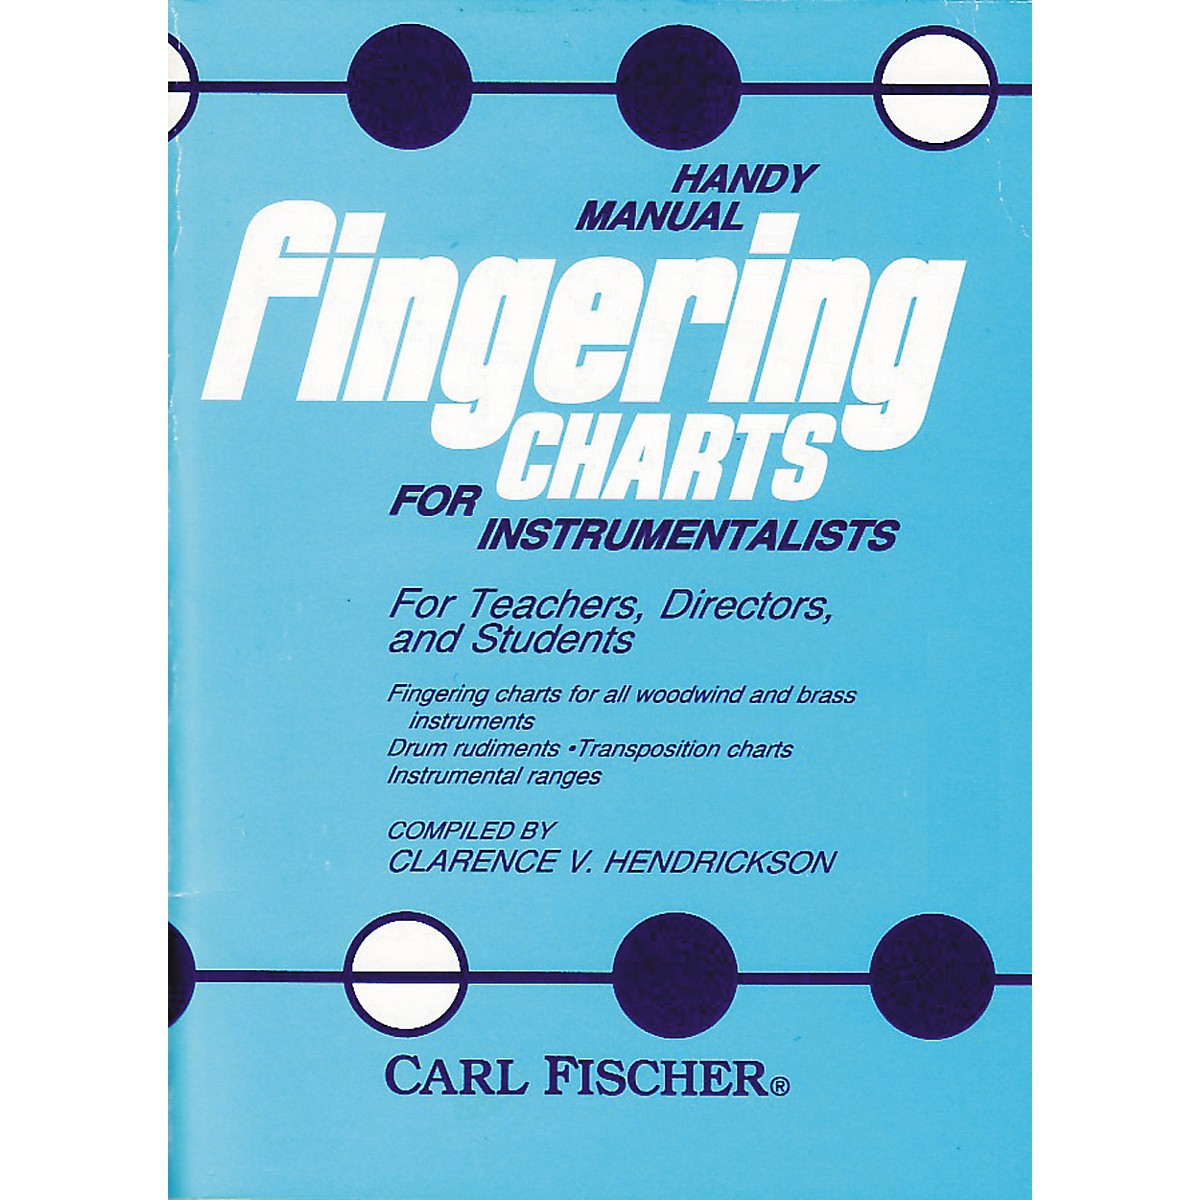 Carl Fischer Handy Manual Fingering Charts For Instrumentalists